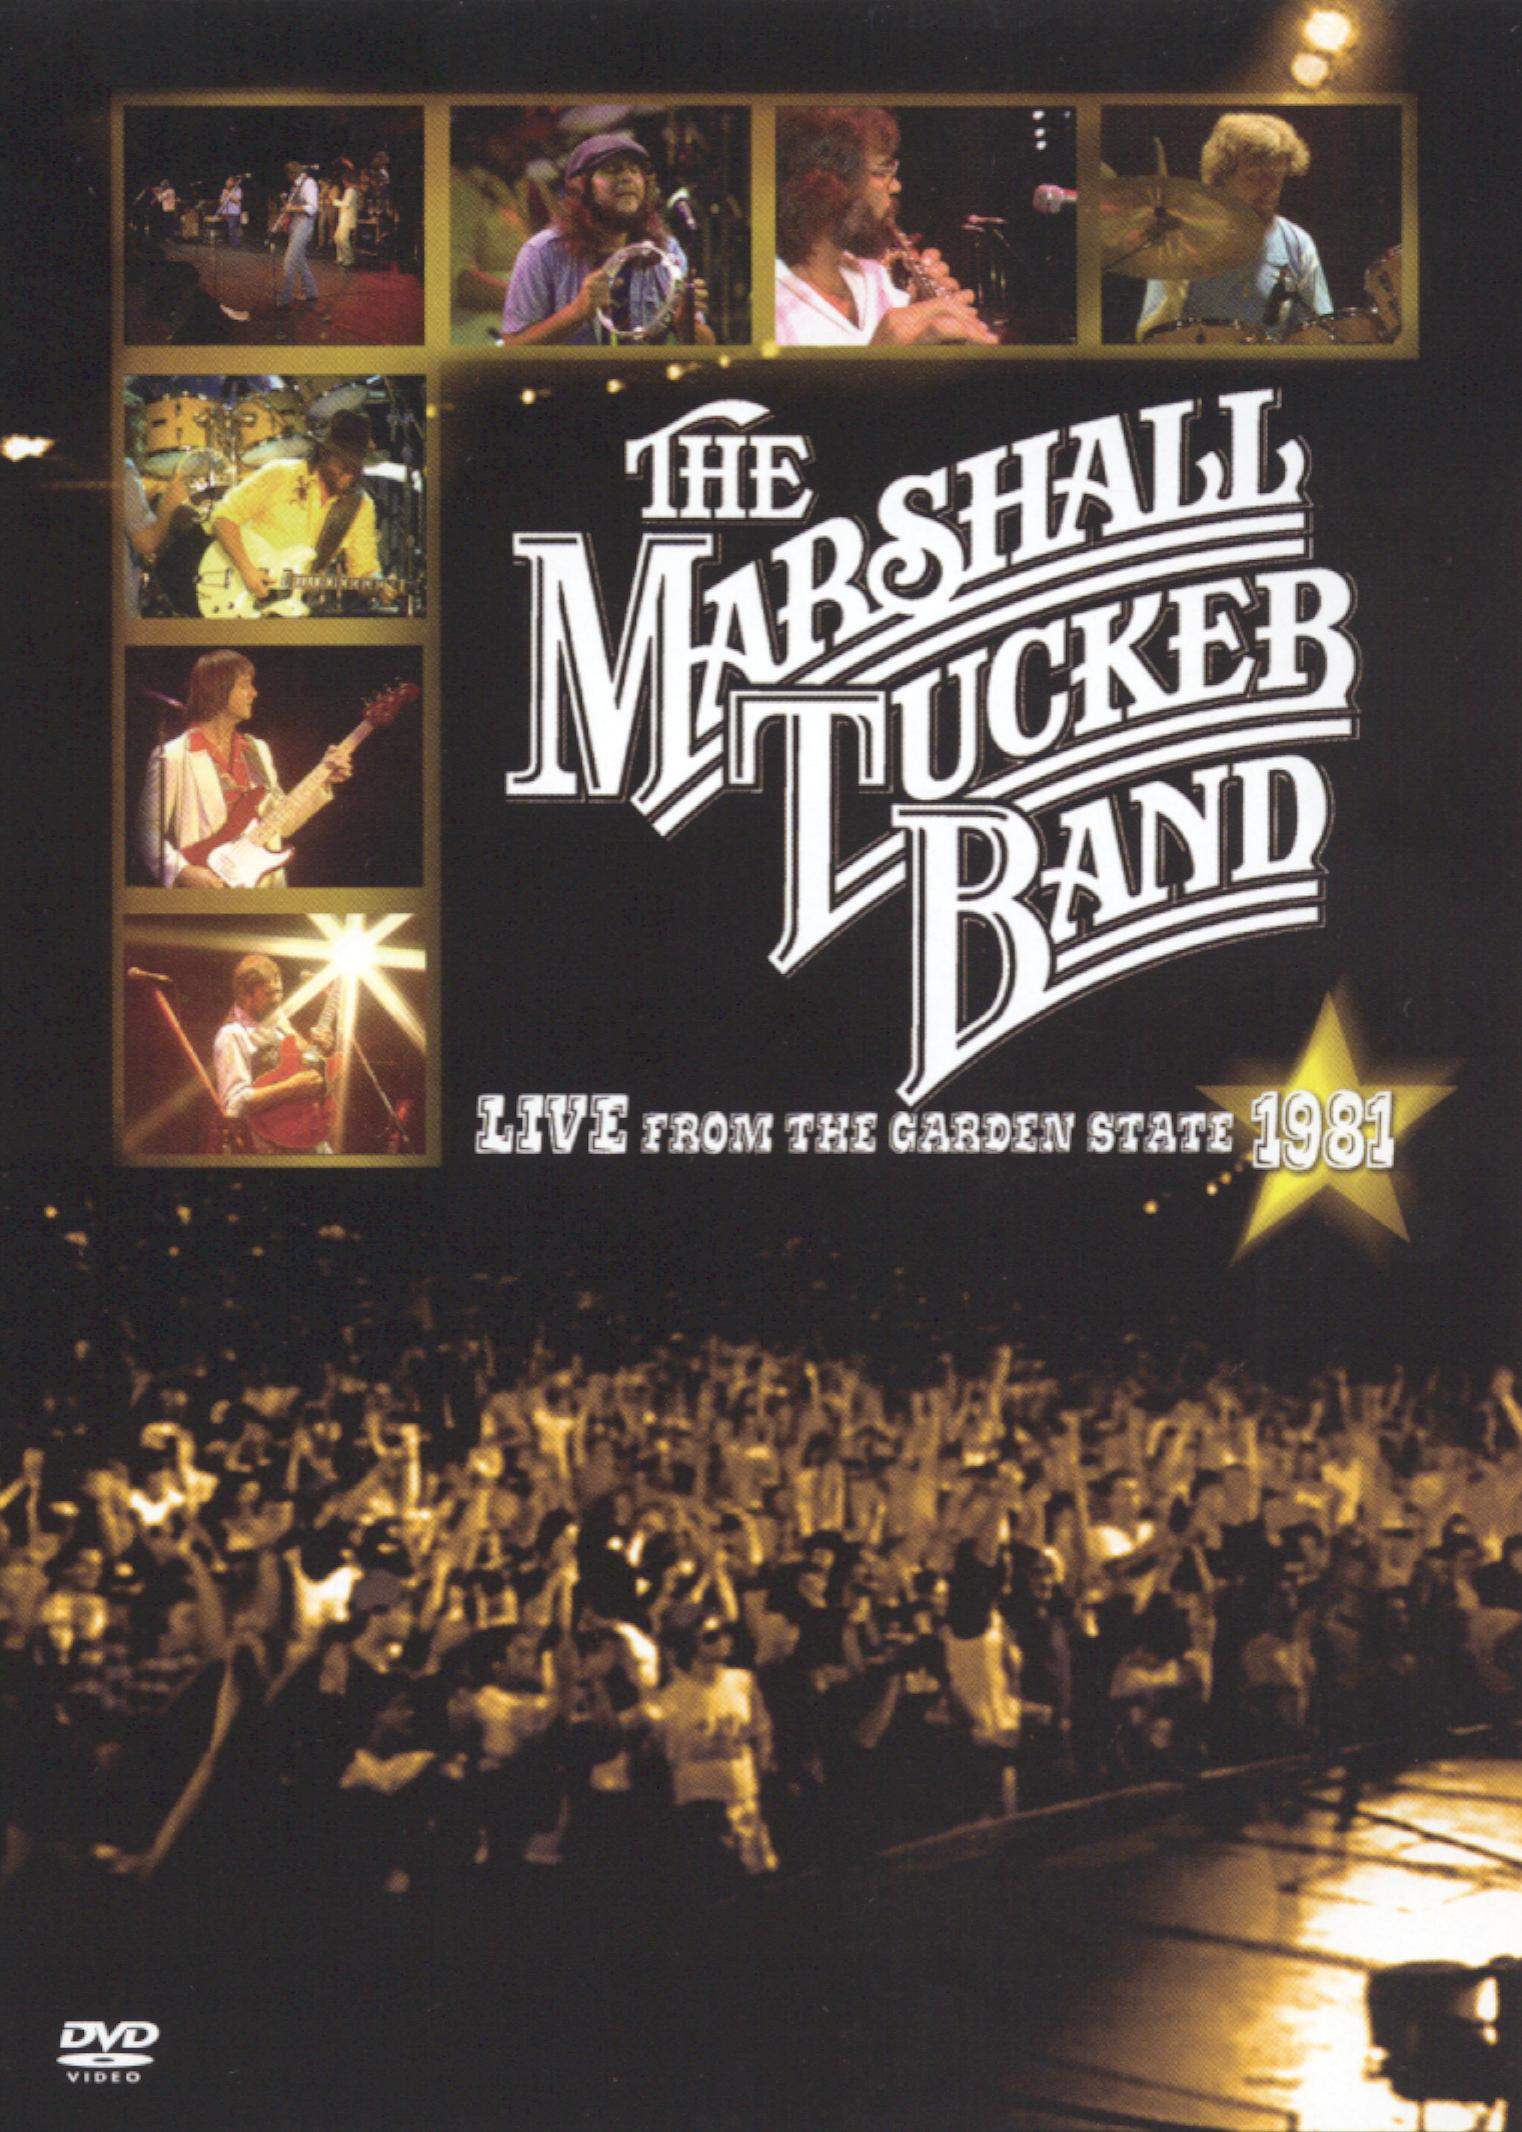 The Marshall Tucker Band: Live From the Garden State 1981